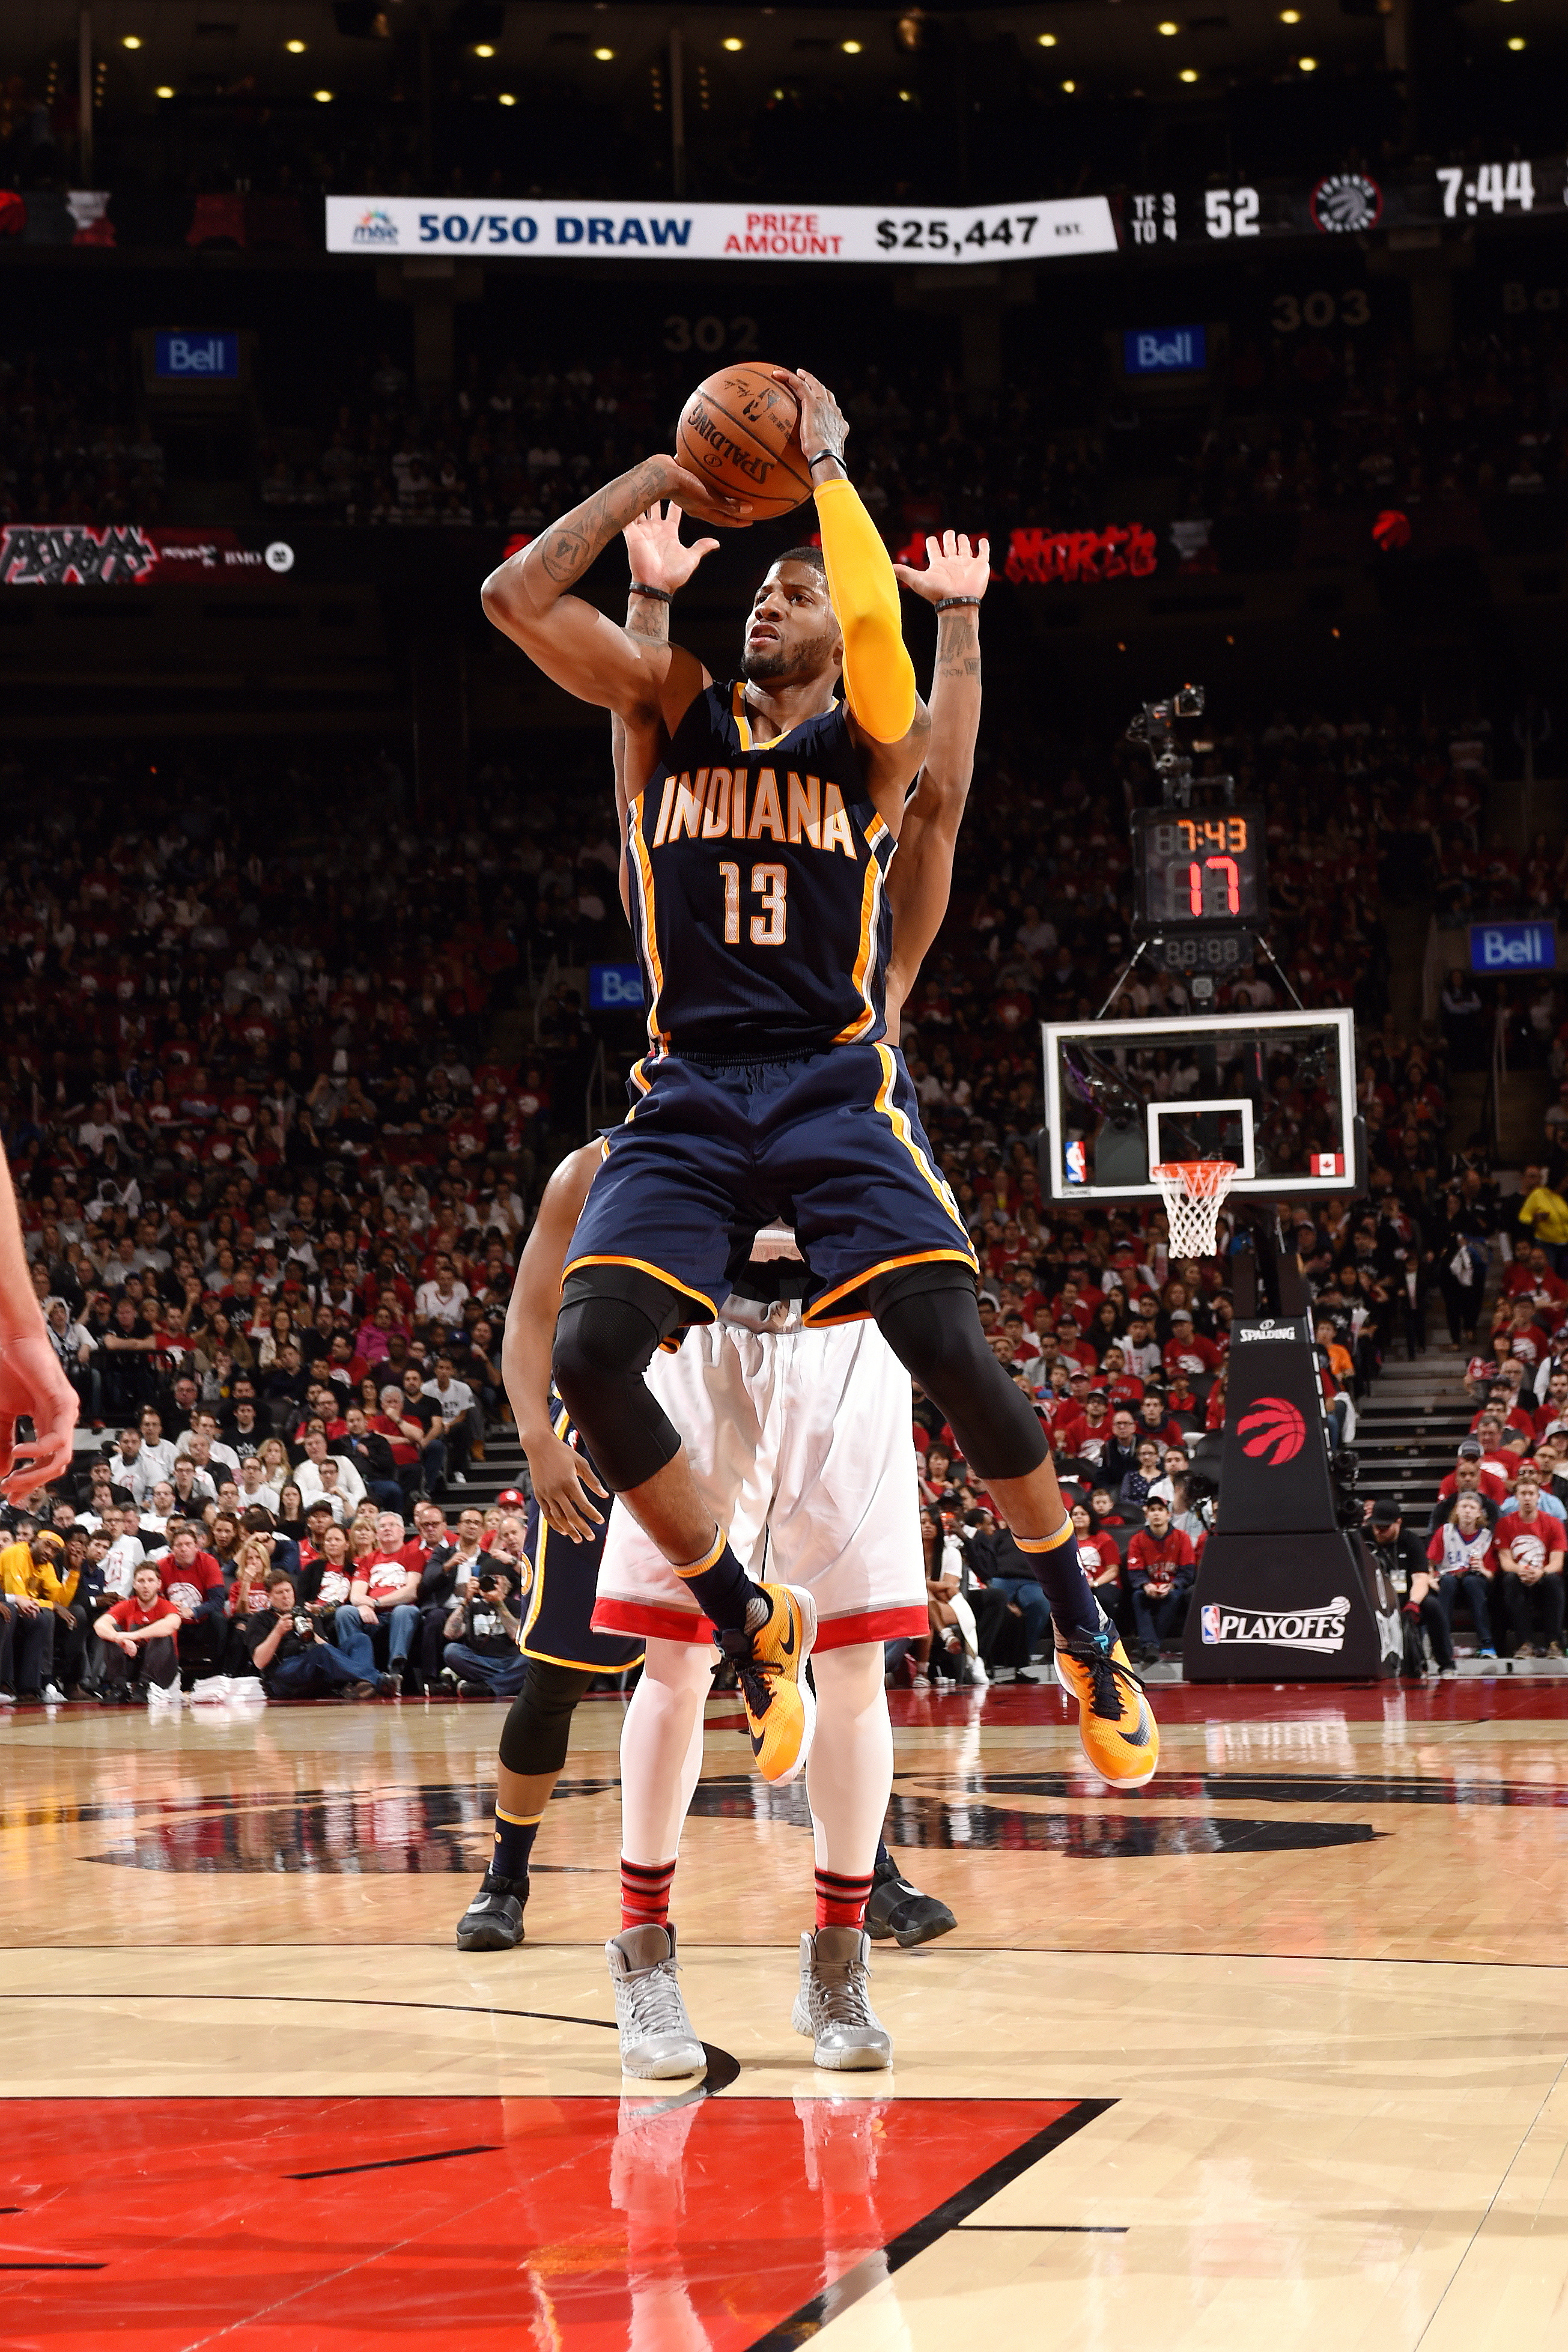 TORONTO, CANADA - APRIl 16: Paul George #13 of the Indiana Pacers shoots the ball during the game against the Toronto Raptors in Game One of the Eastern Conference Finals during the 2016 NBA Playoffs on April 16, 2016 at the Air Canada Centre in Toronto,